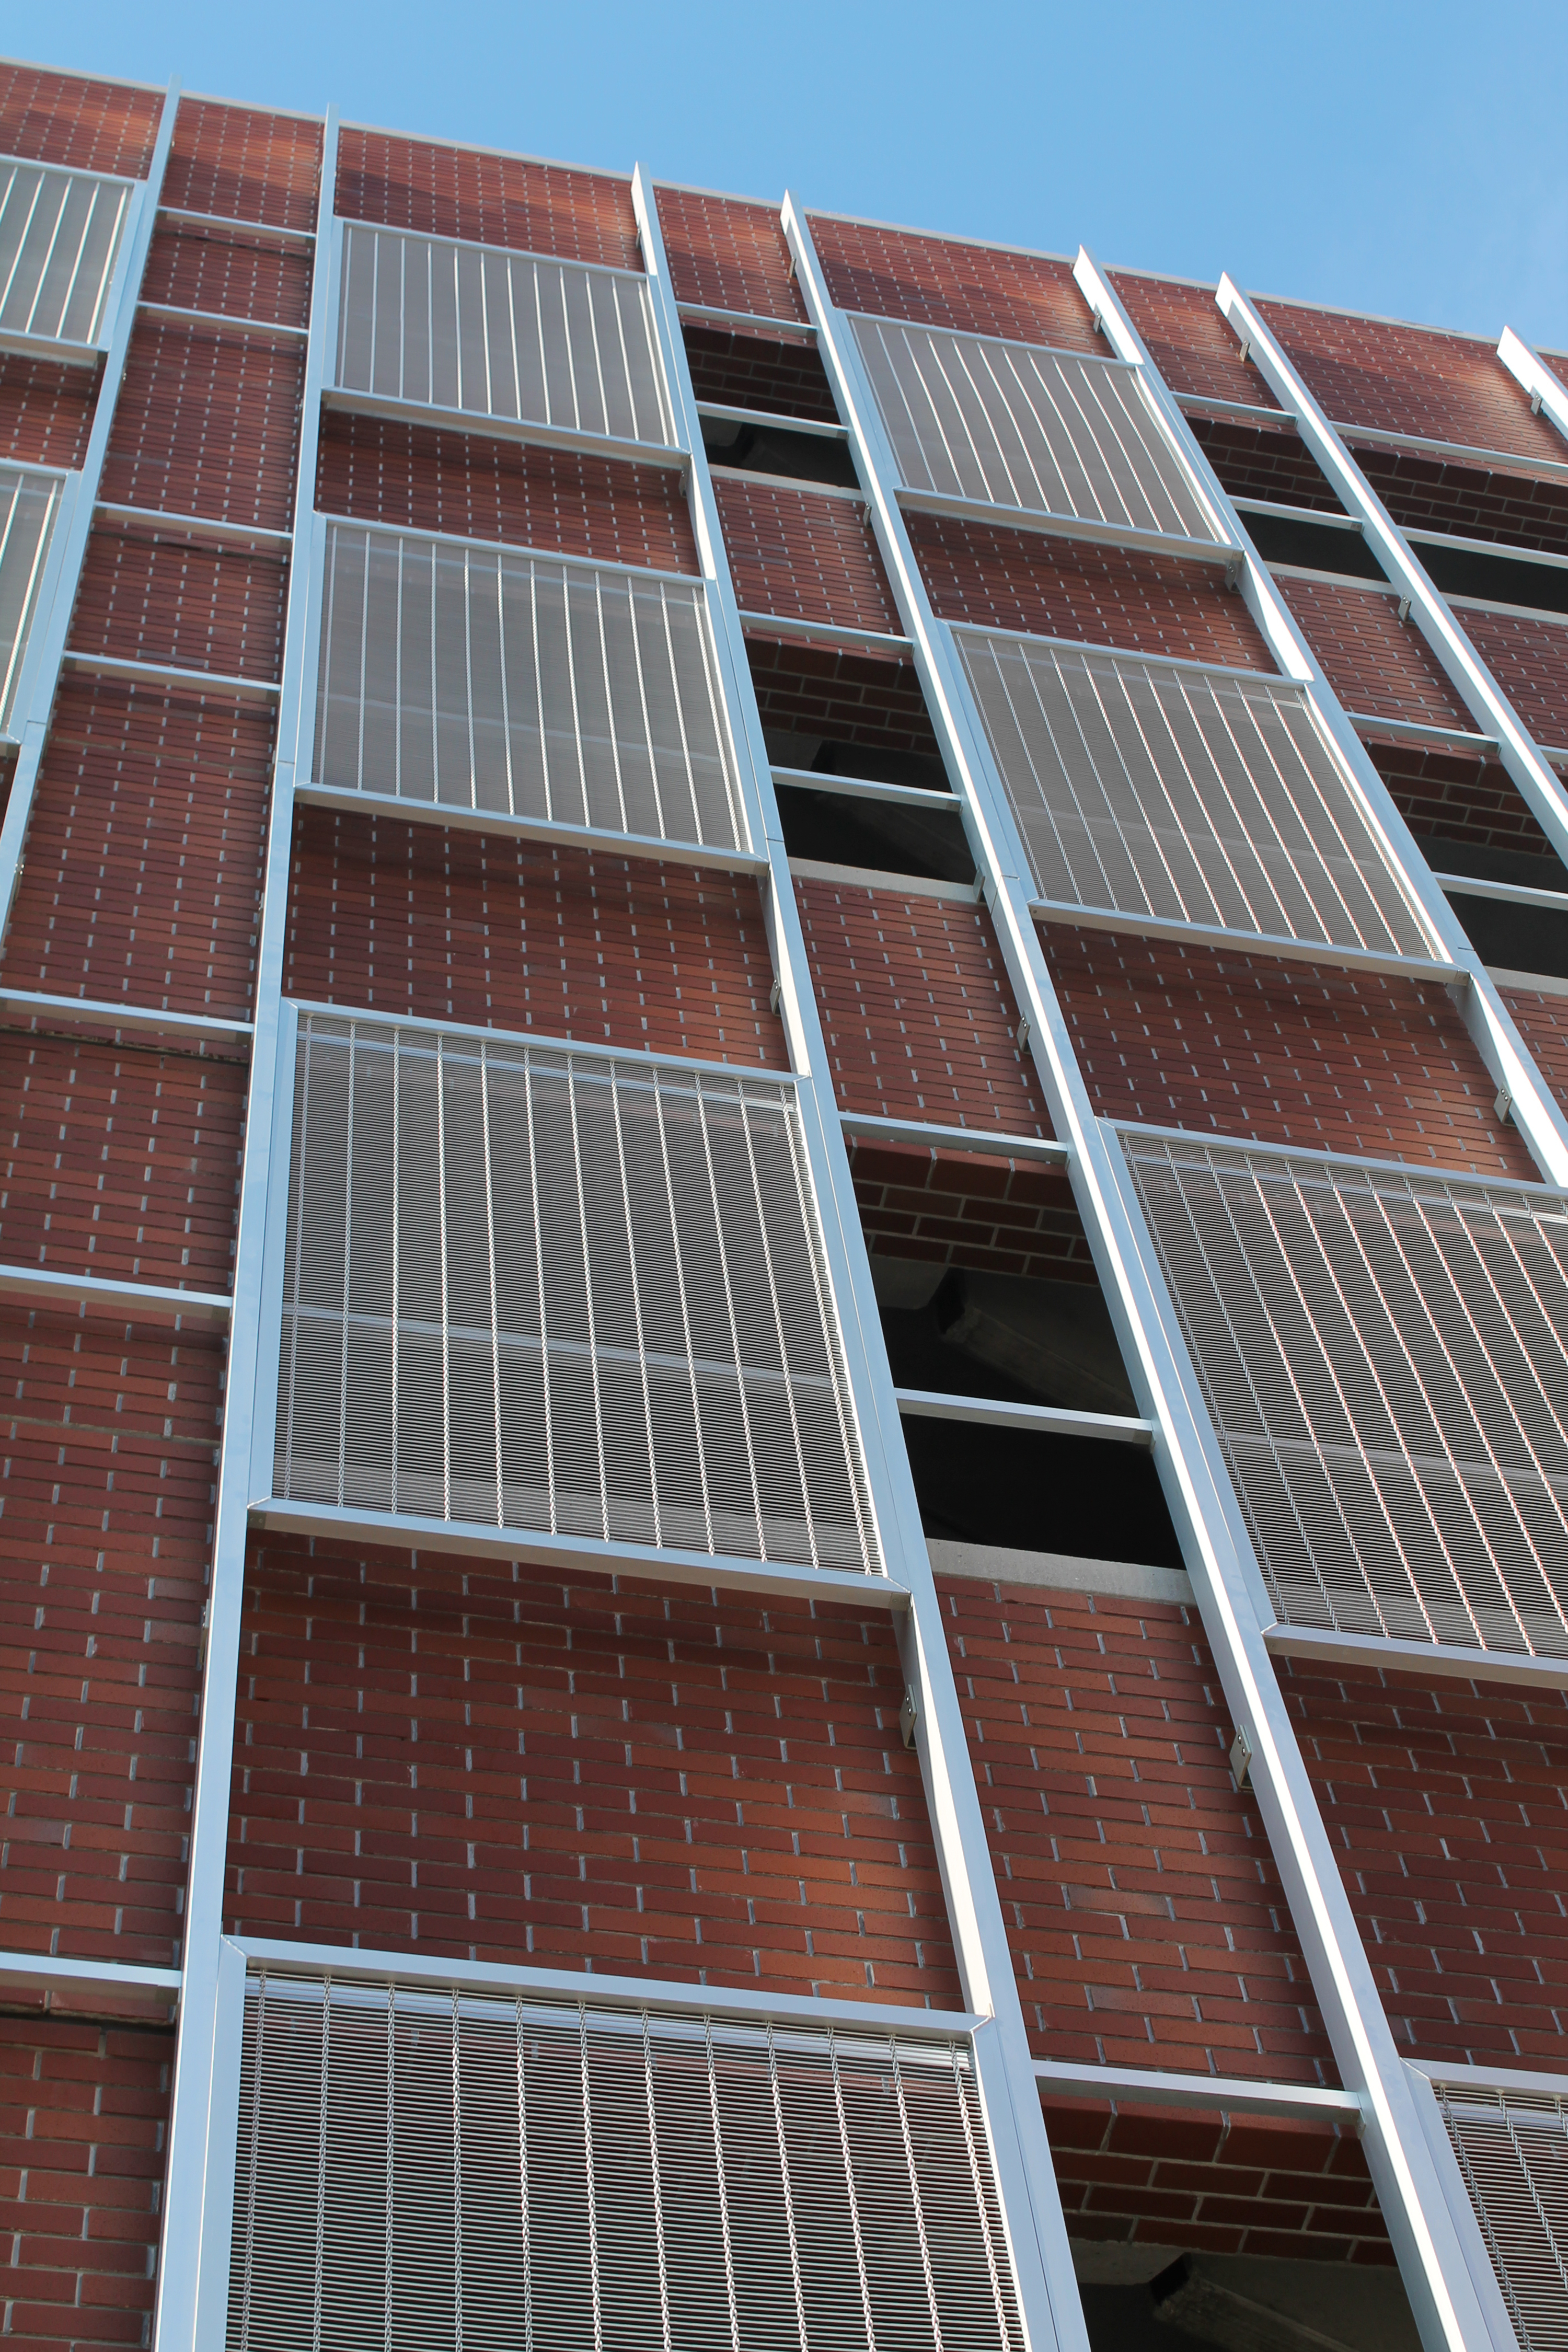 Banker Wire Aluminum M13Z-145 decorative wire mesh panels adorn the new 350-space parking structure located in Haverhill, Massachusetts.